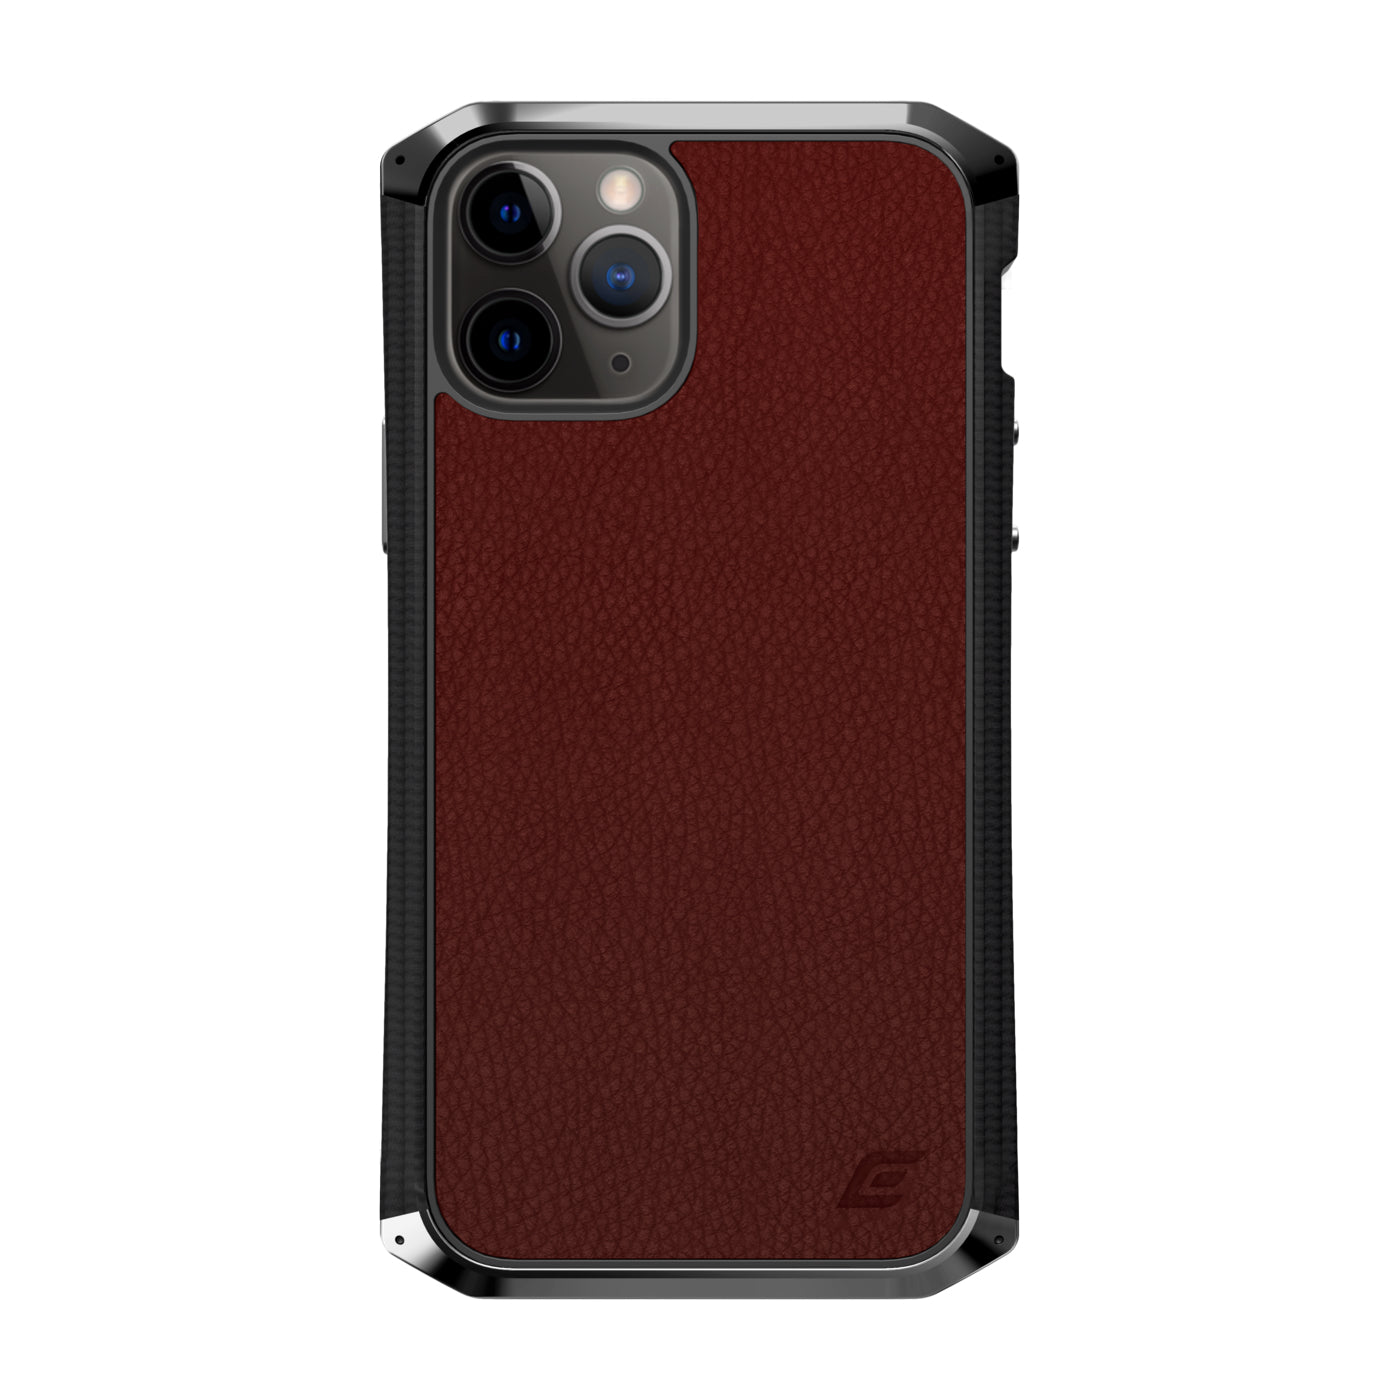 Element Case Ronin Premium Case For iPhone 11 Pro - Cognac